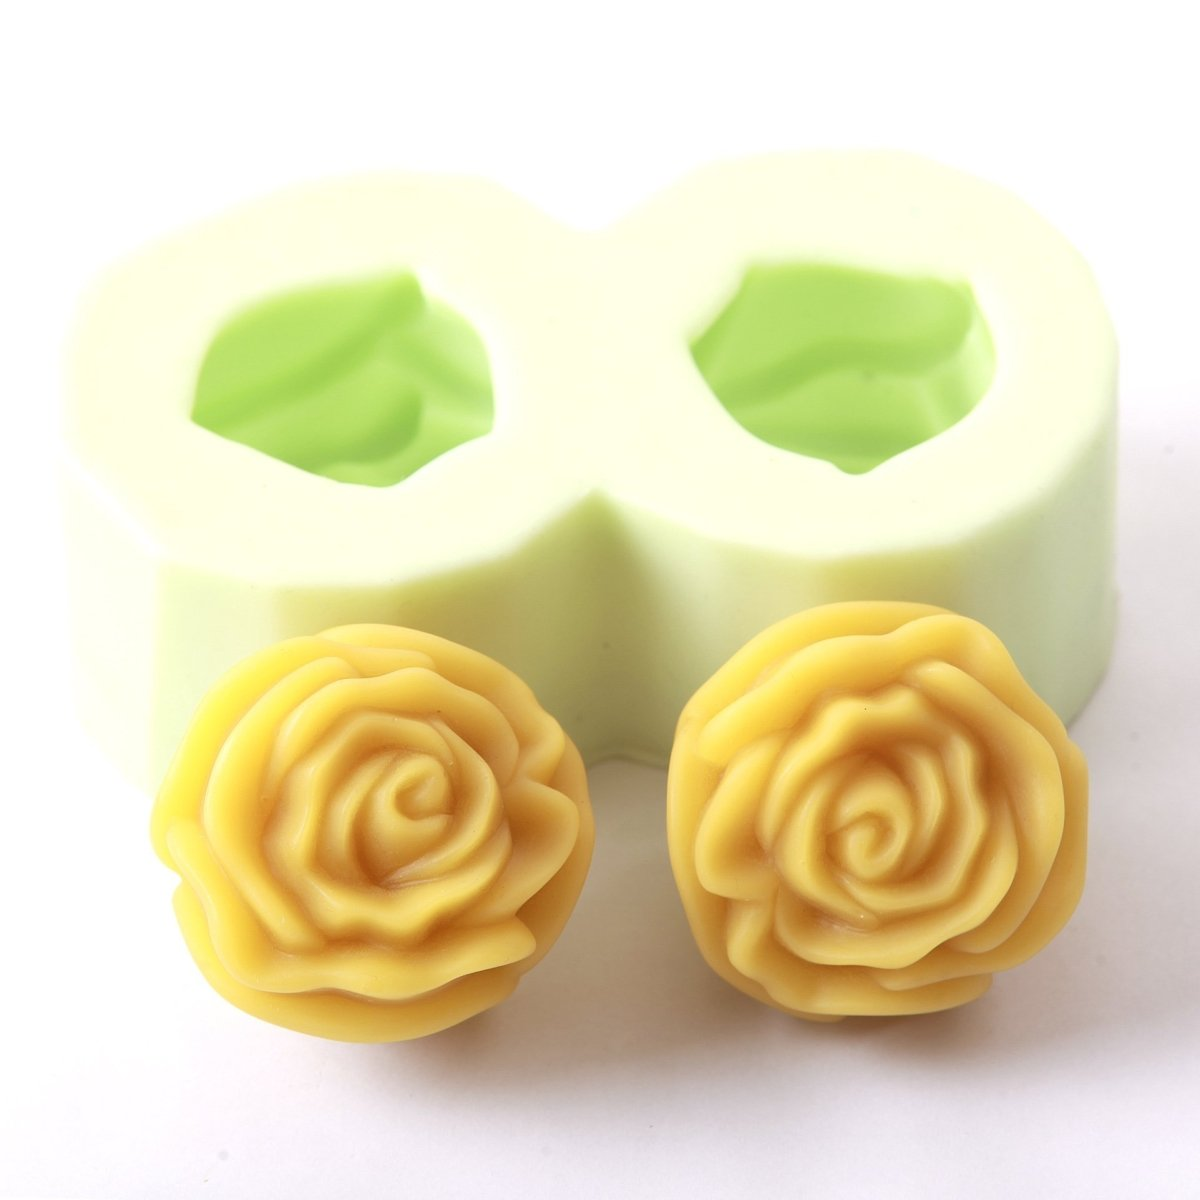 Double Rose Silicone Soap Mould R0075 - Mystic Moments UK